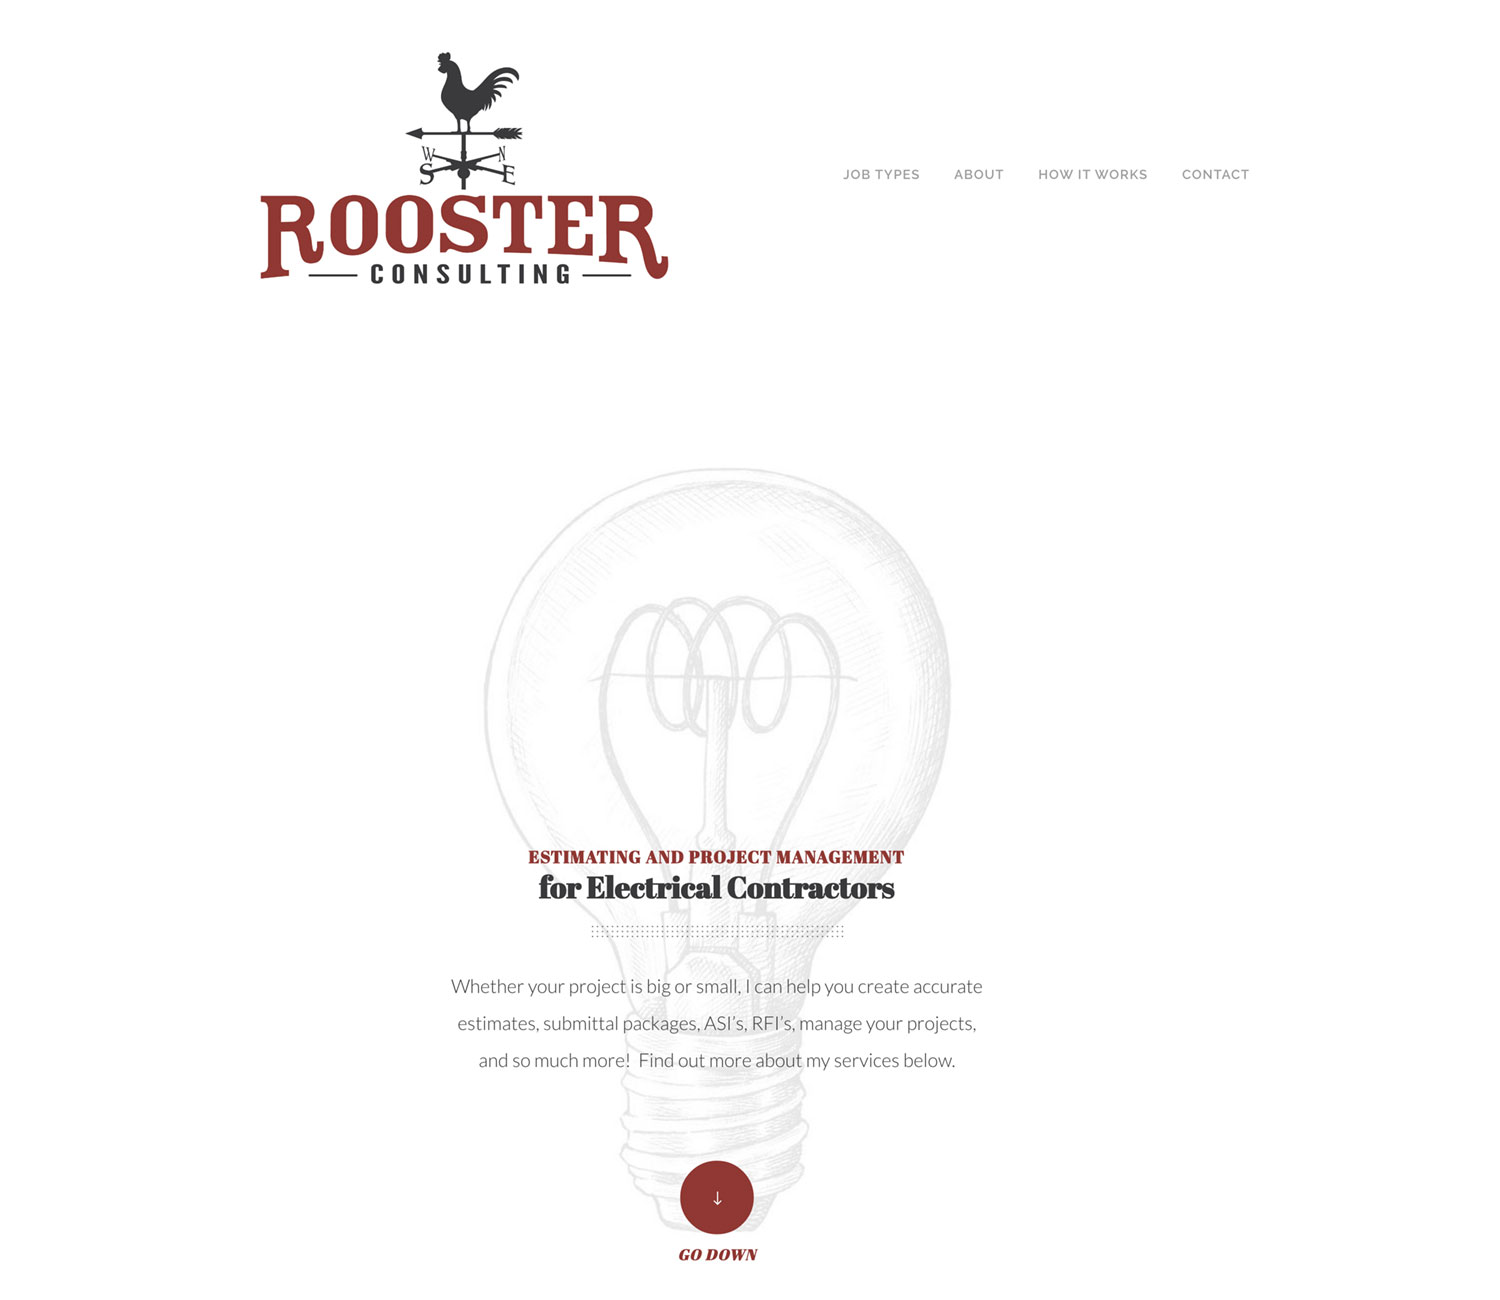 RoosterConsulting